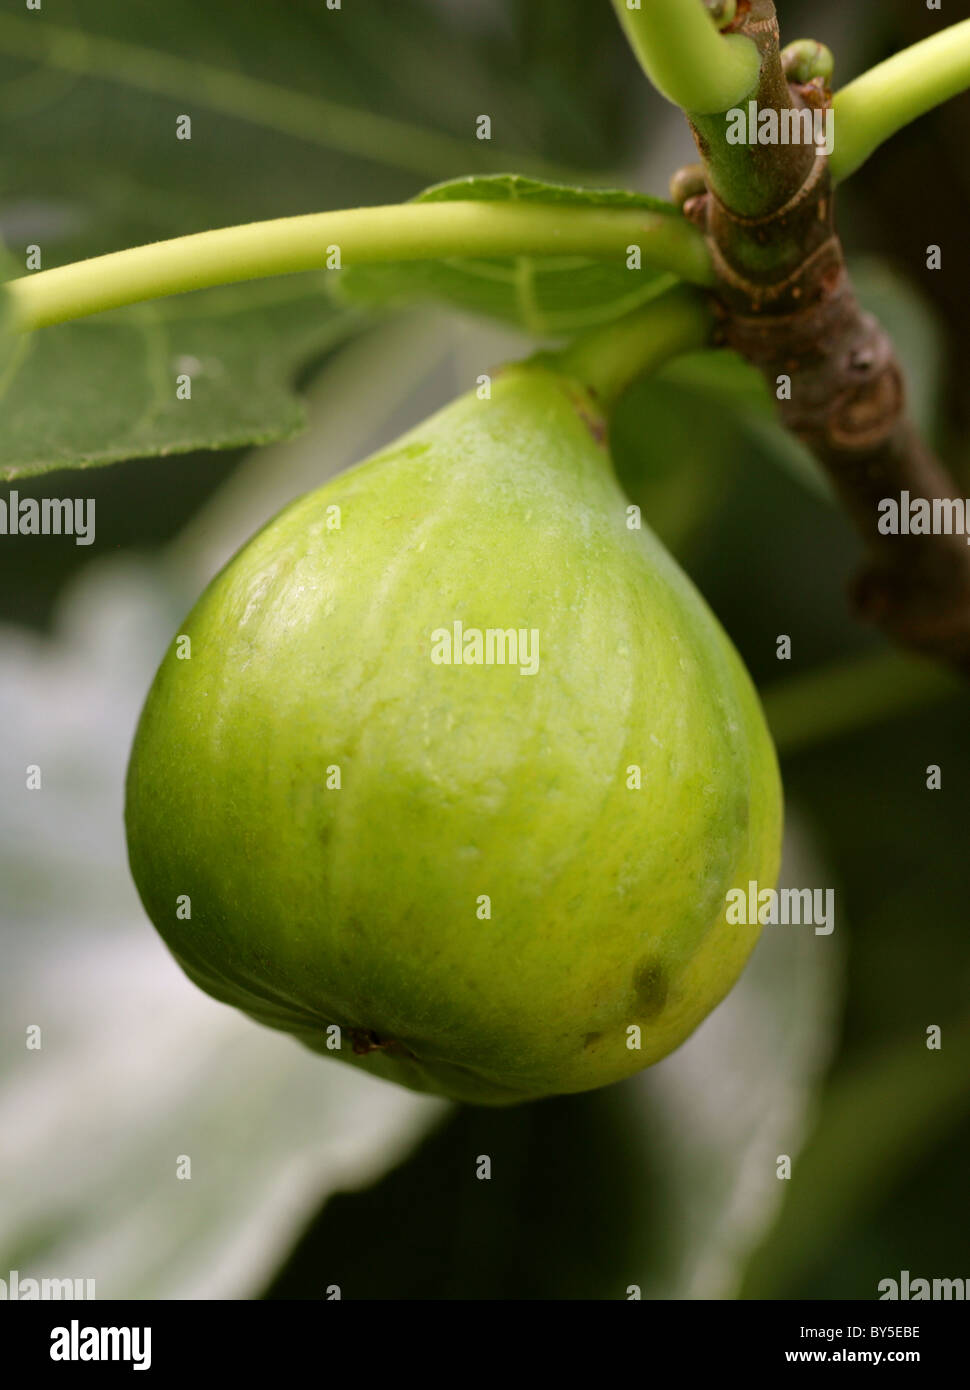 Common Fig, Ficus carica, Moraceae. Mediterranean, South West Asia. Stock Photo